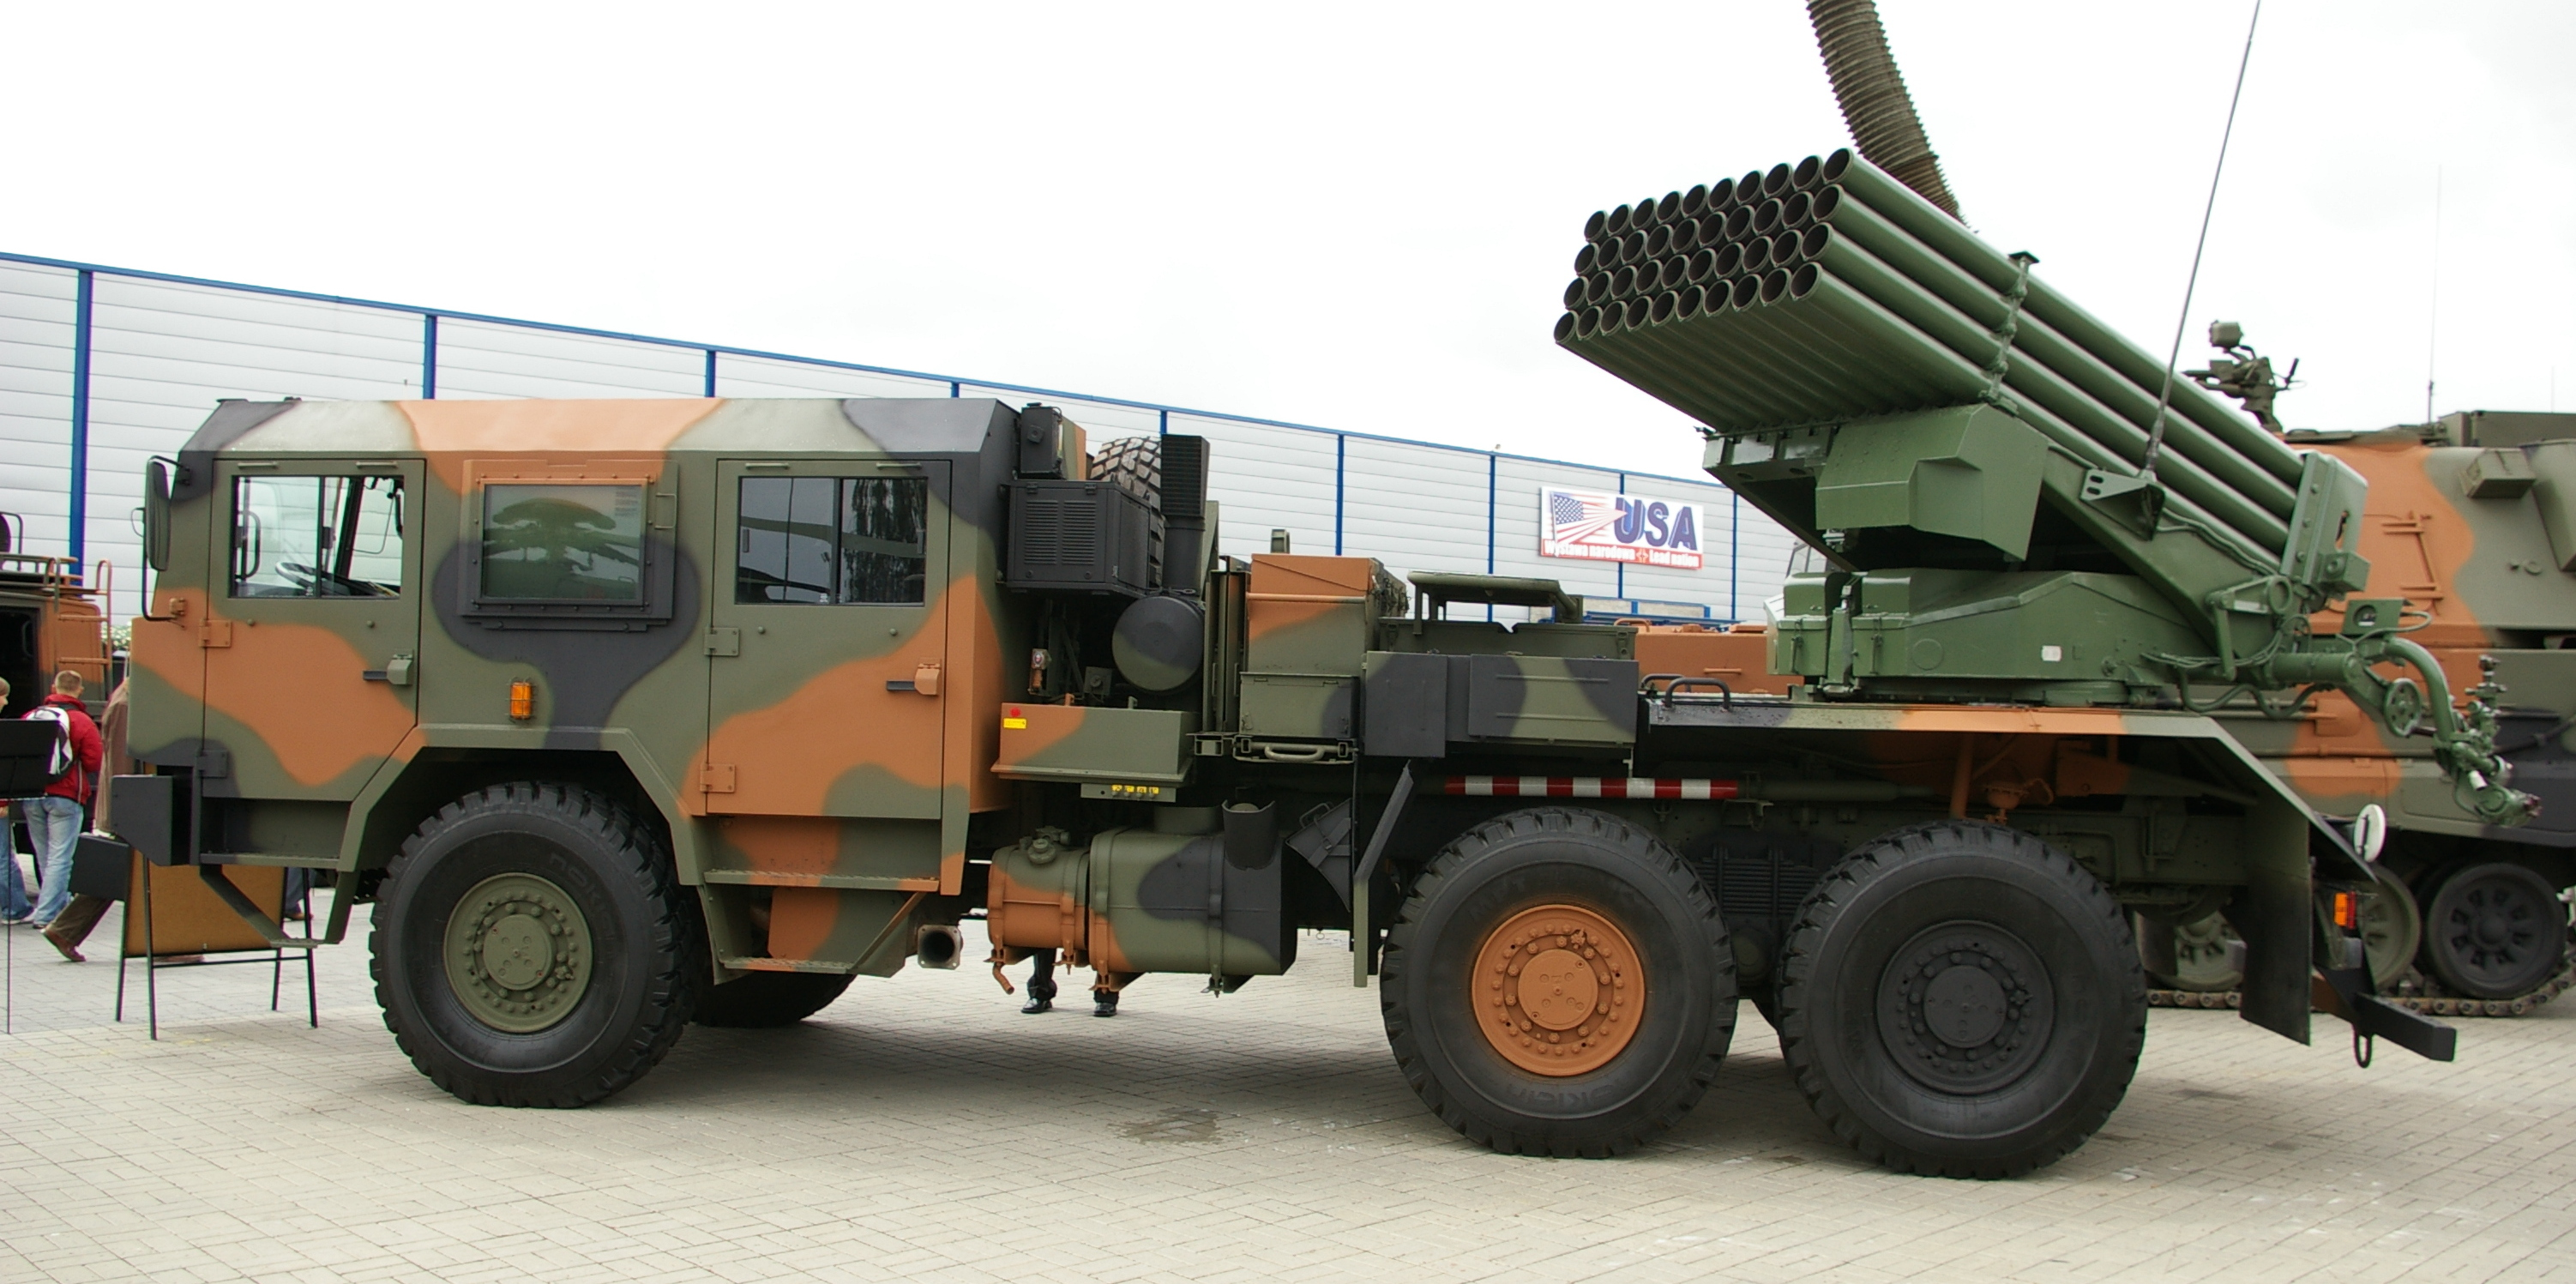 This Polish Langusta rocket artillery TEL is a modernized version of the Soviet Grad rocket artillery system. Note the multitude of rocket launch tubes.